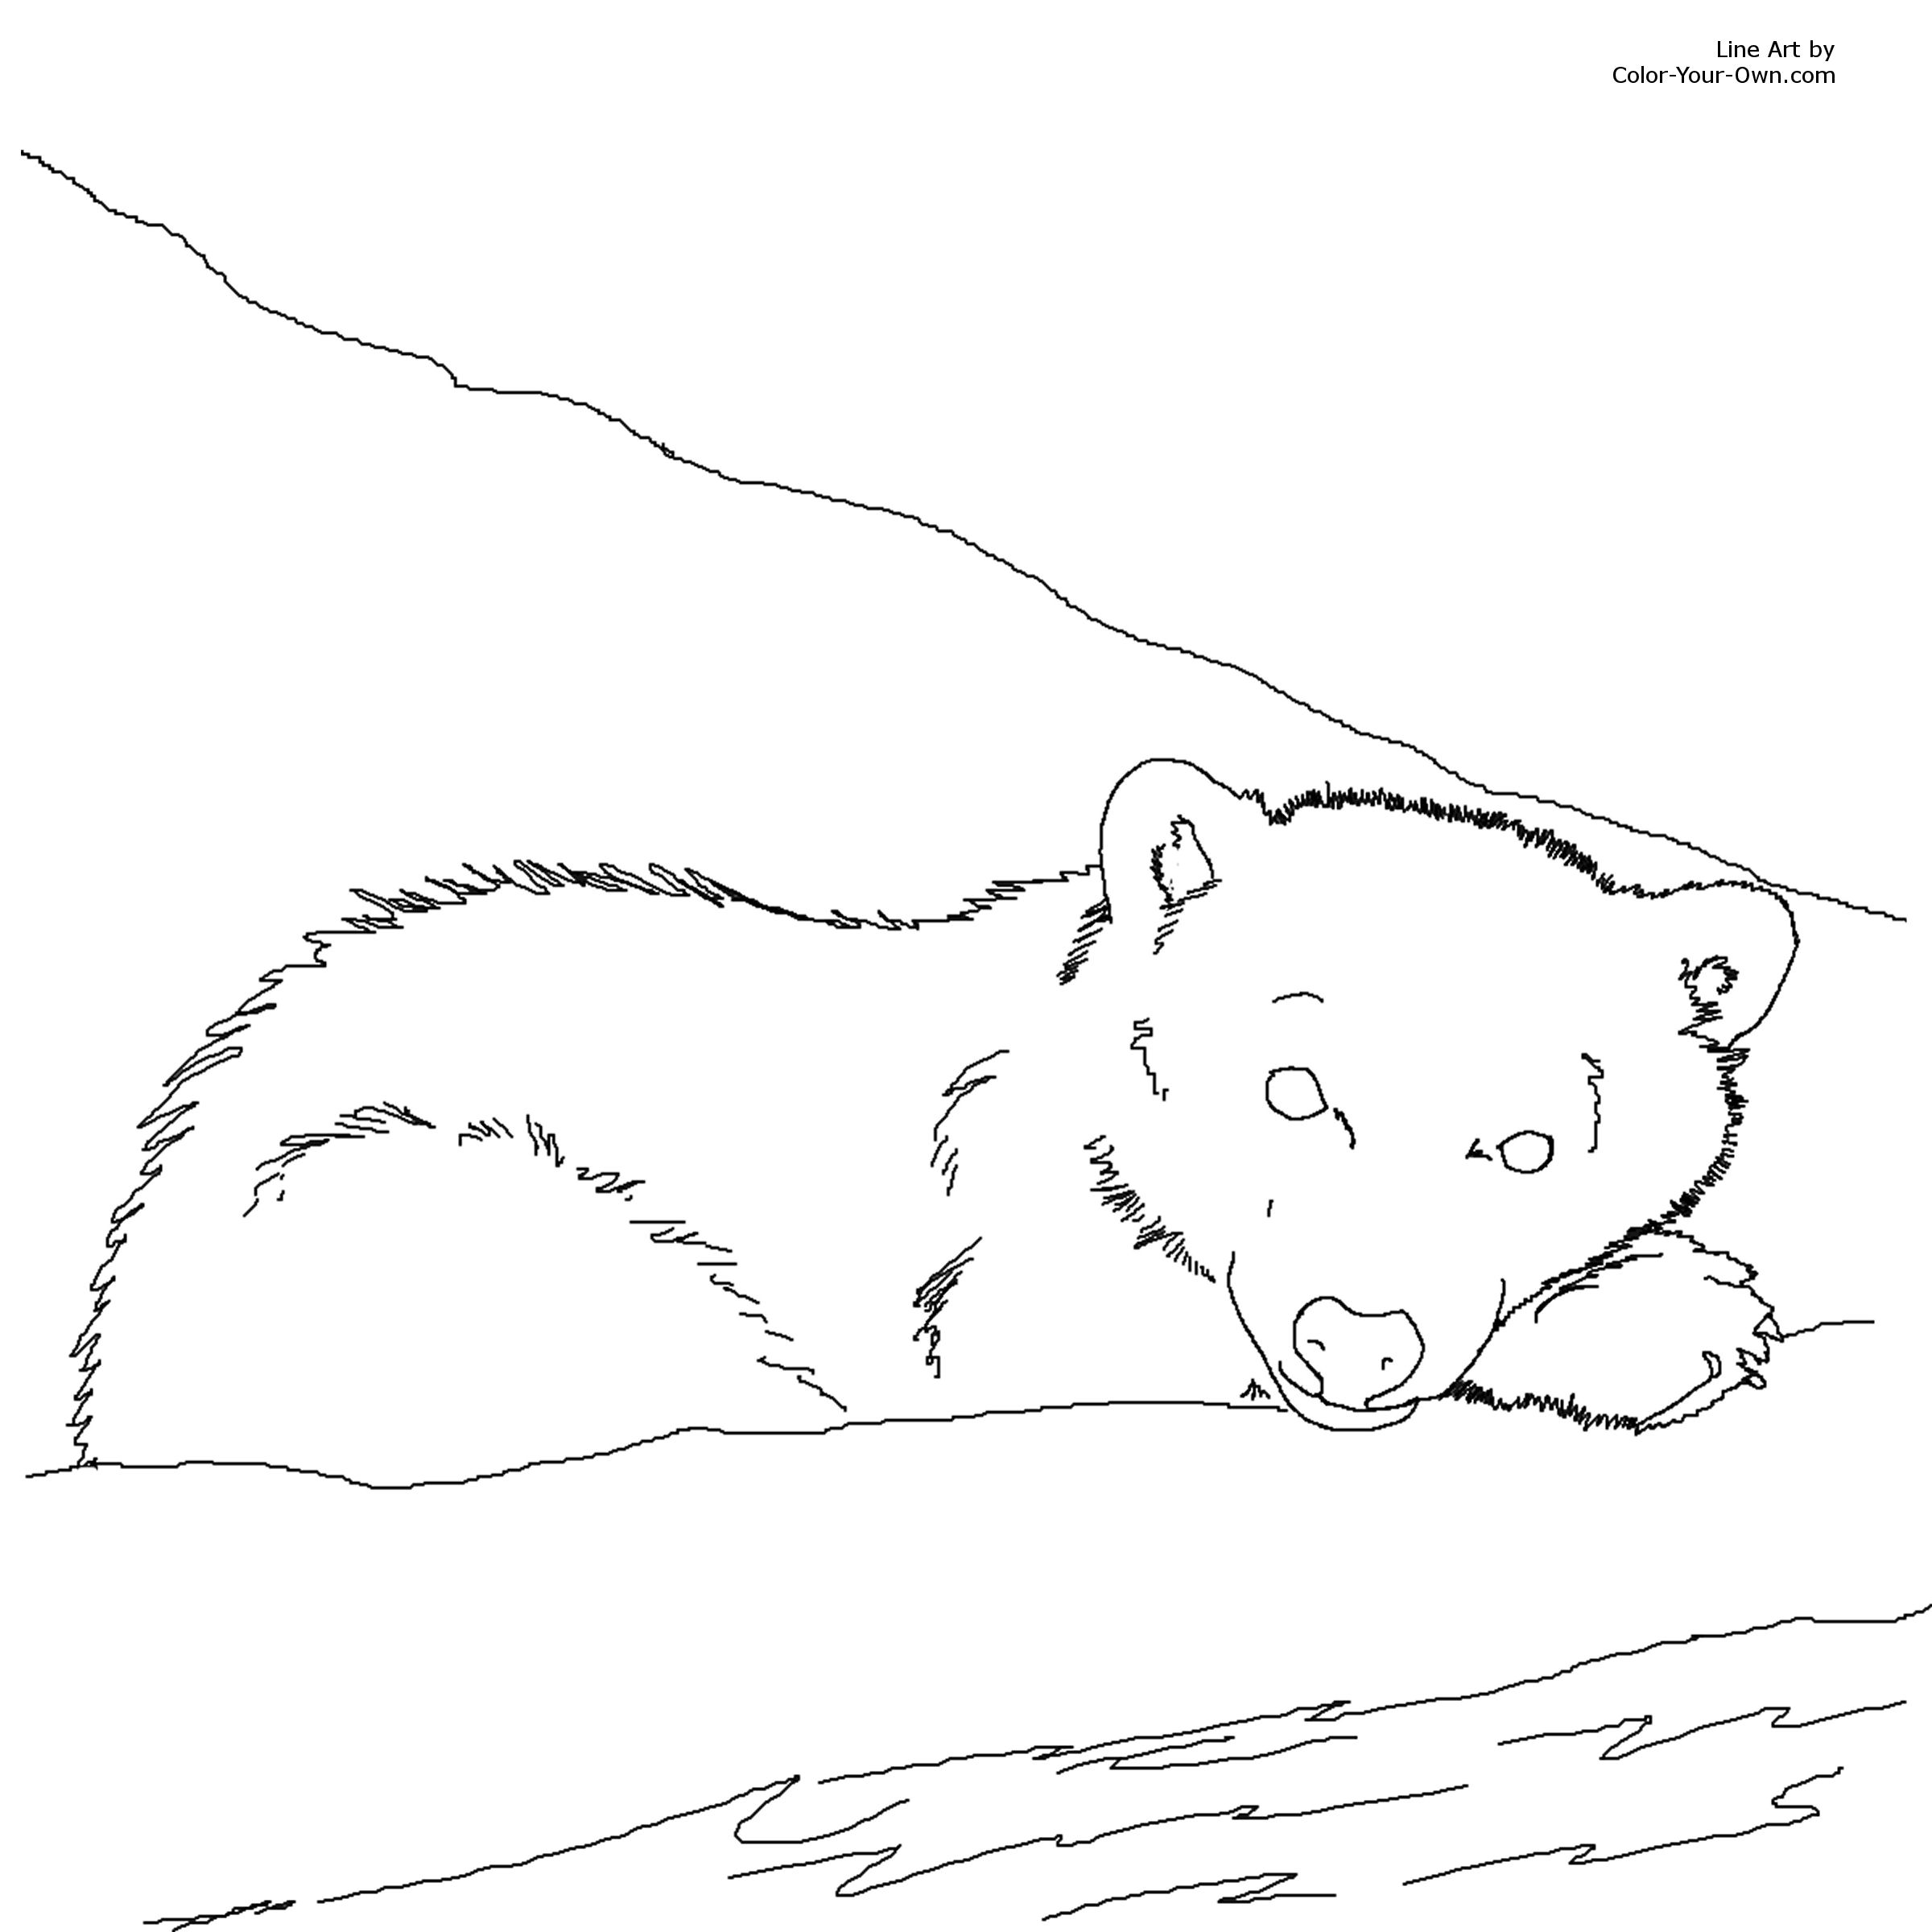 bear cub coloring pages bear cub clipart colouring page pencil and in color bear cub bear pages coloring